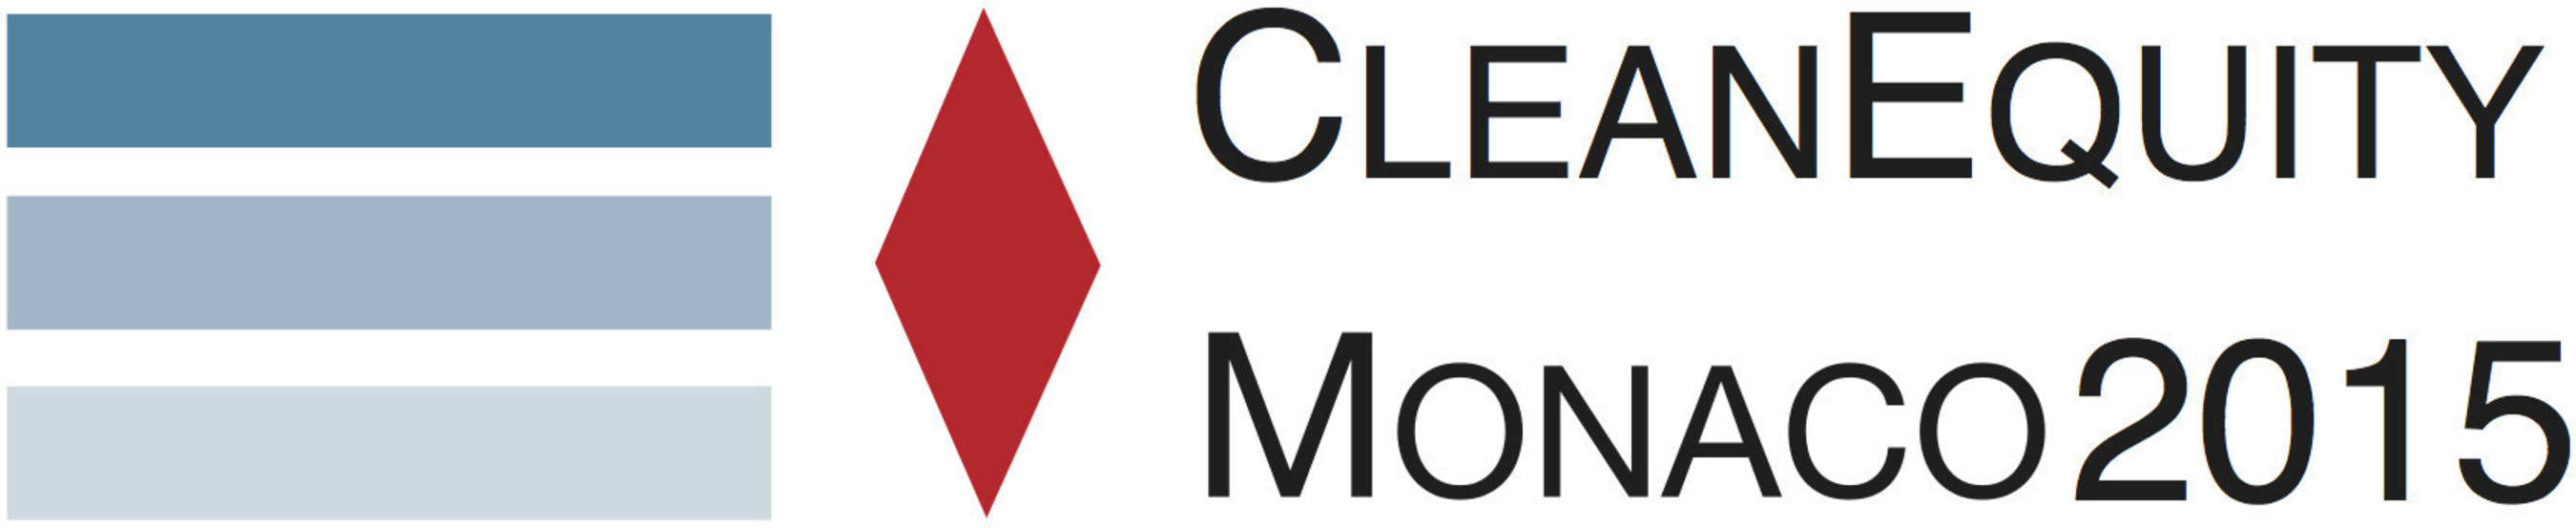 Mercatus, Inc. Selected to Present at CleanEquity Monaco 2015